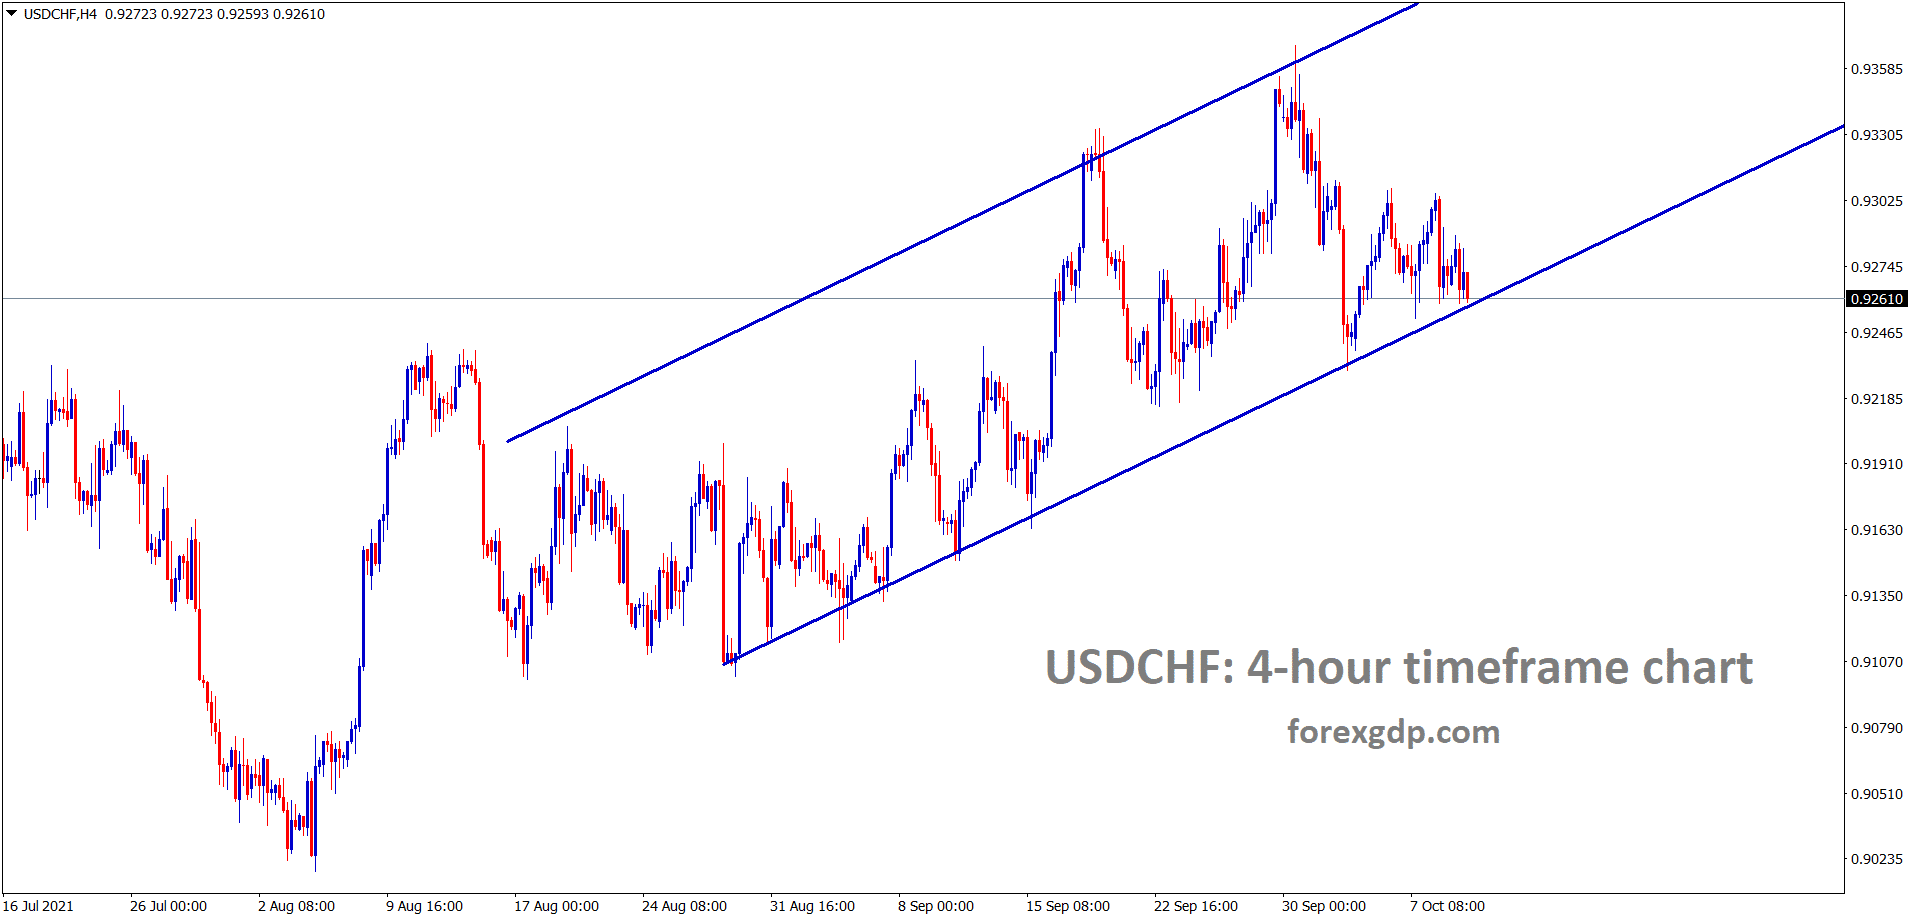 USDCHF is moving in an Ascending channel range